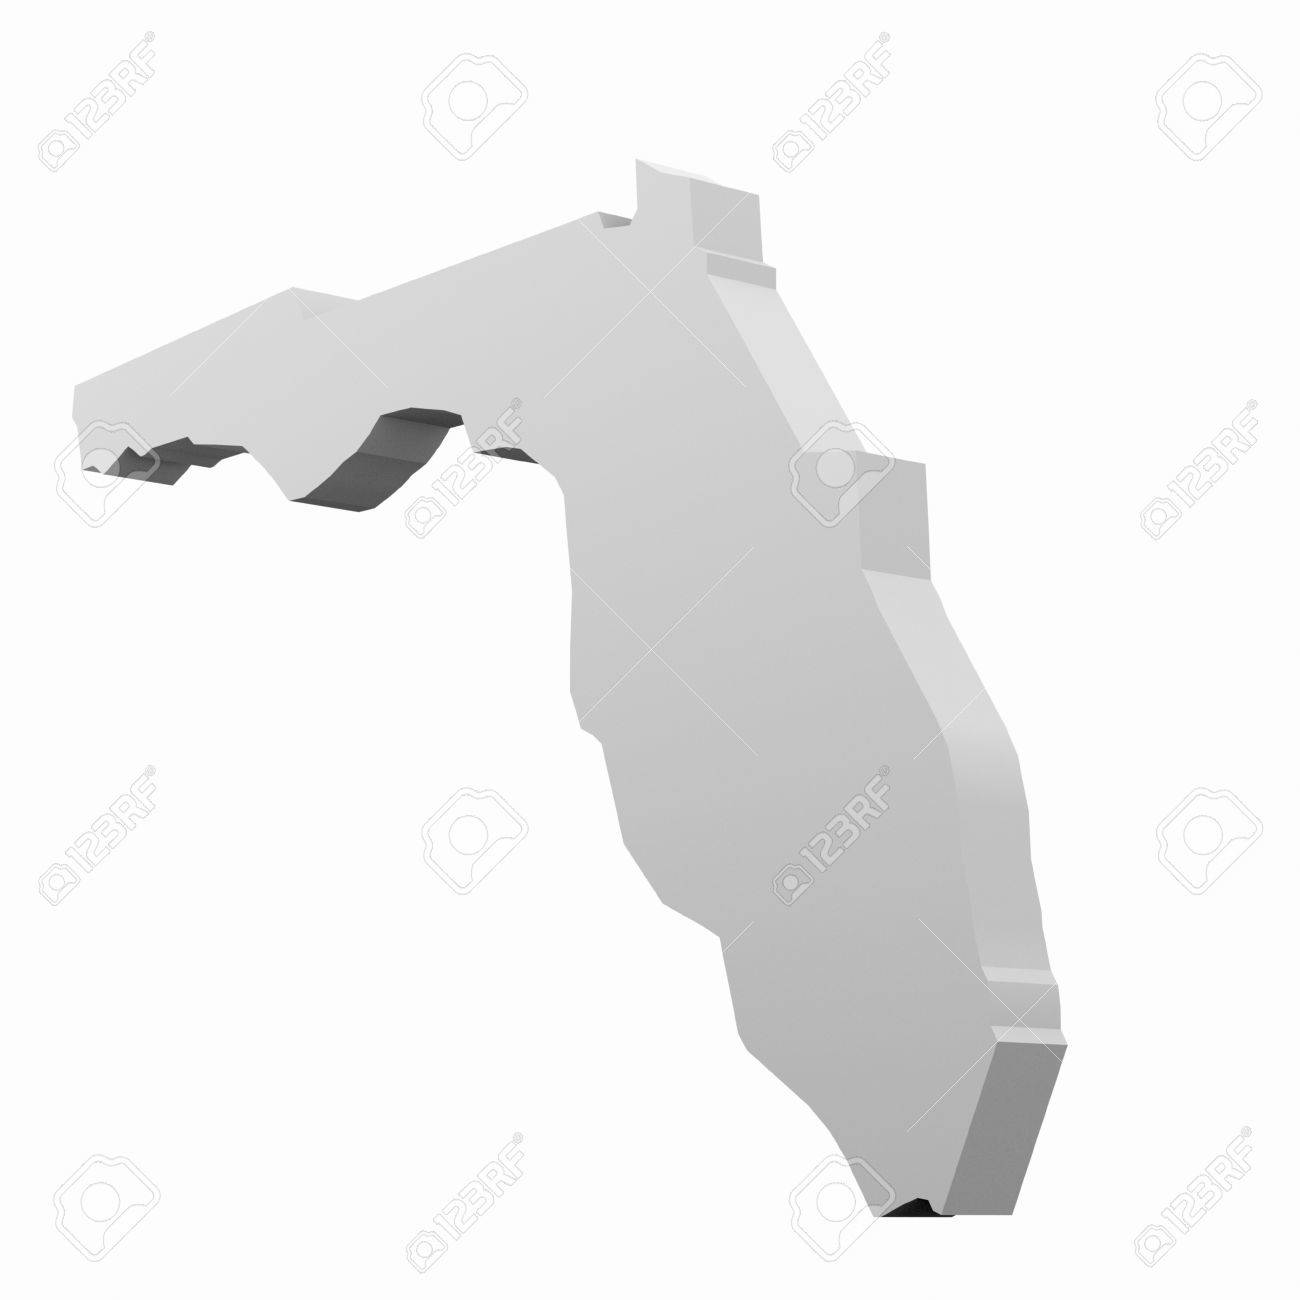 Florida D Map In White Stock Photo Picture And Royalty Free - Florida map black and white